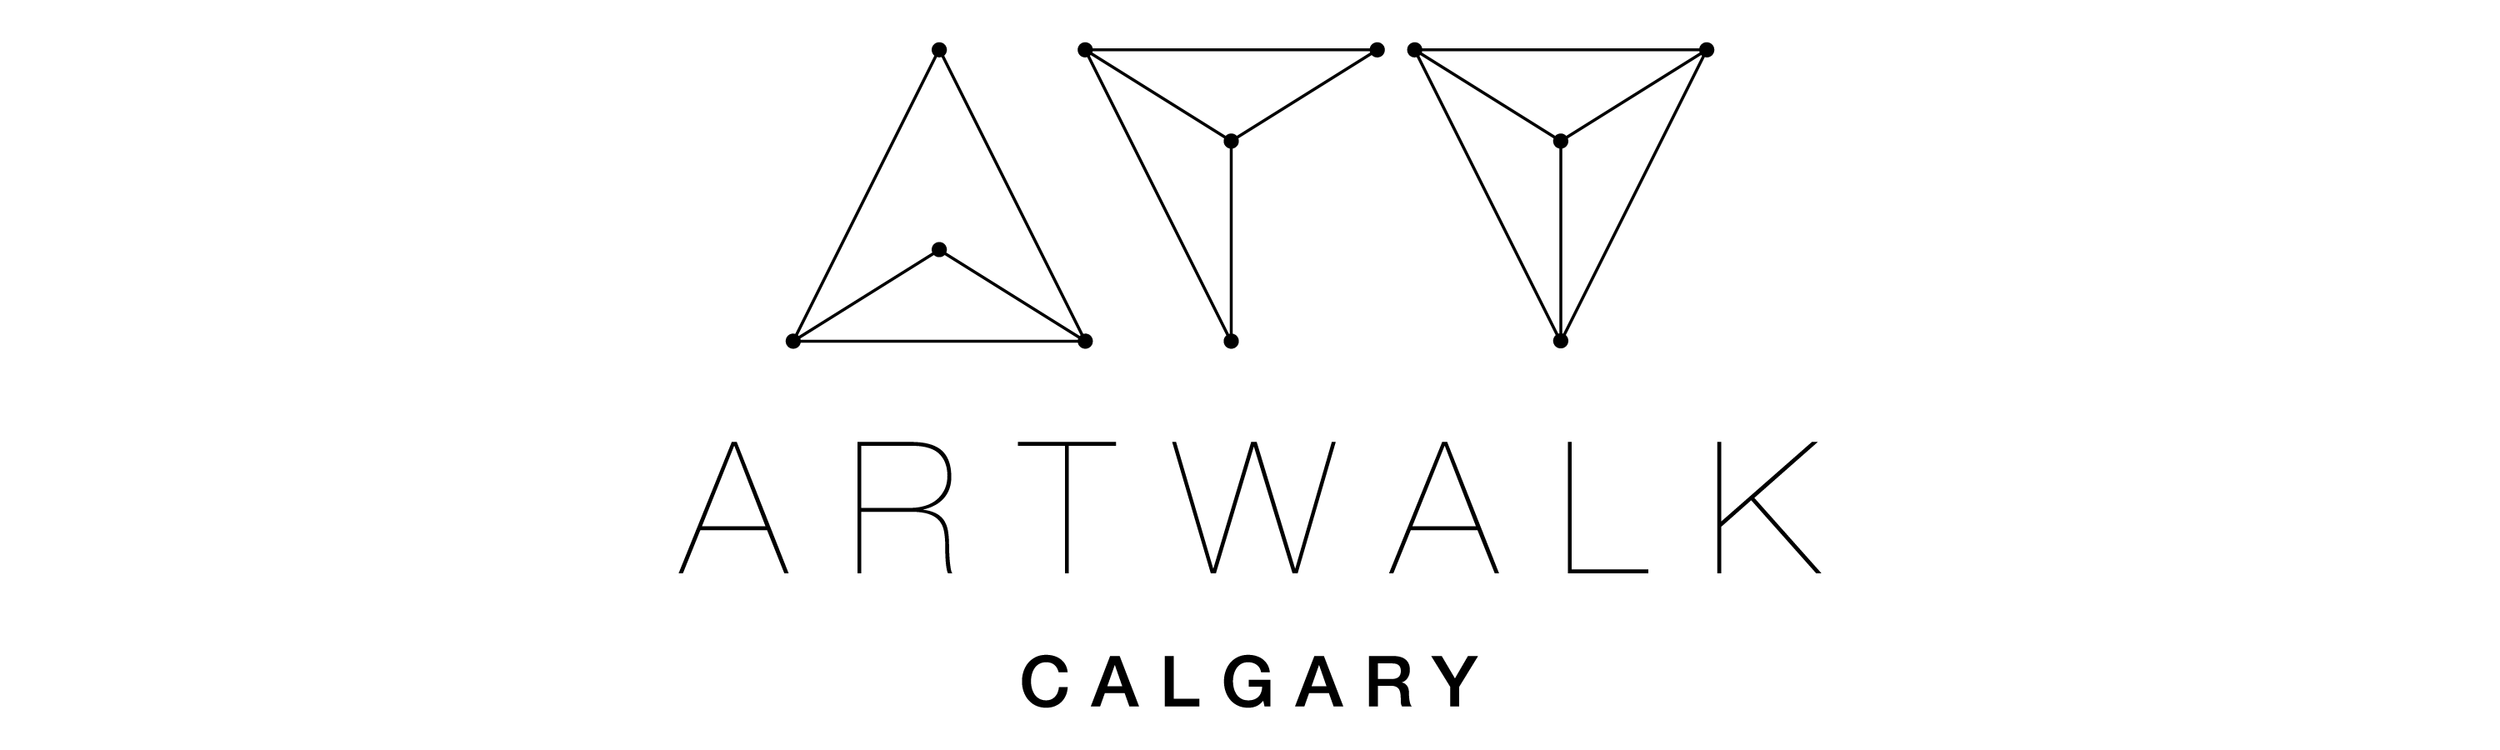 WEBSITE_ARTWALK_BLACK-01.png